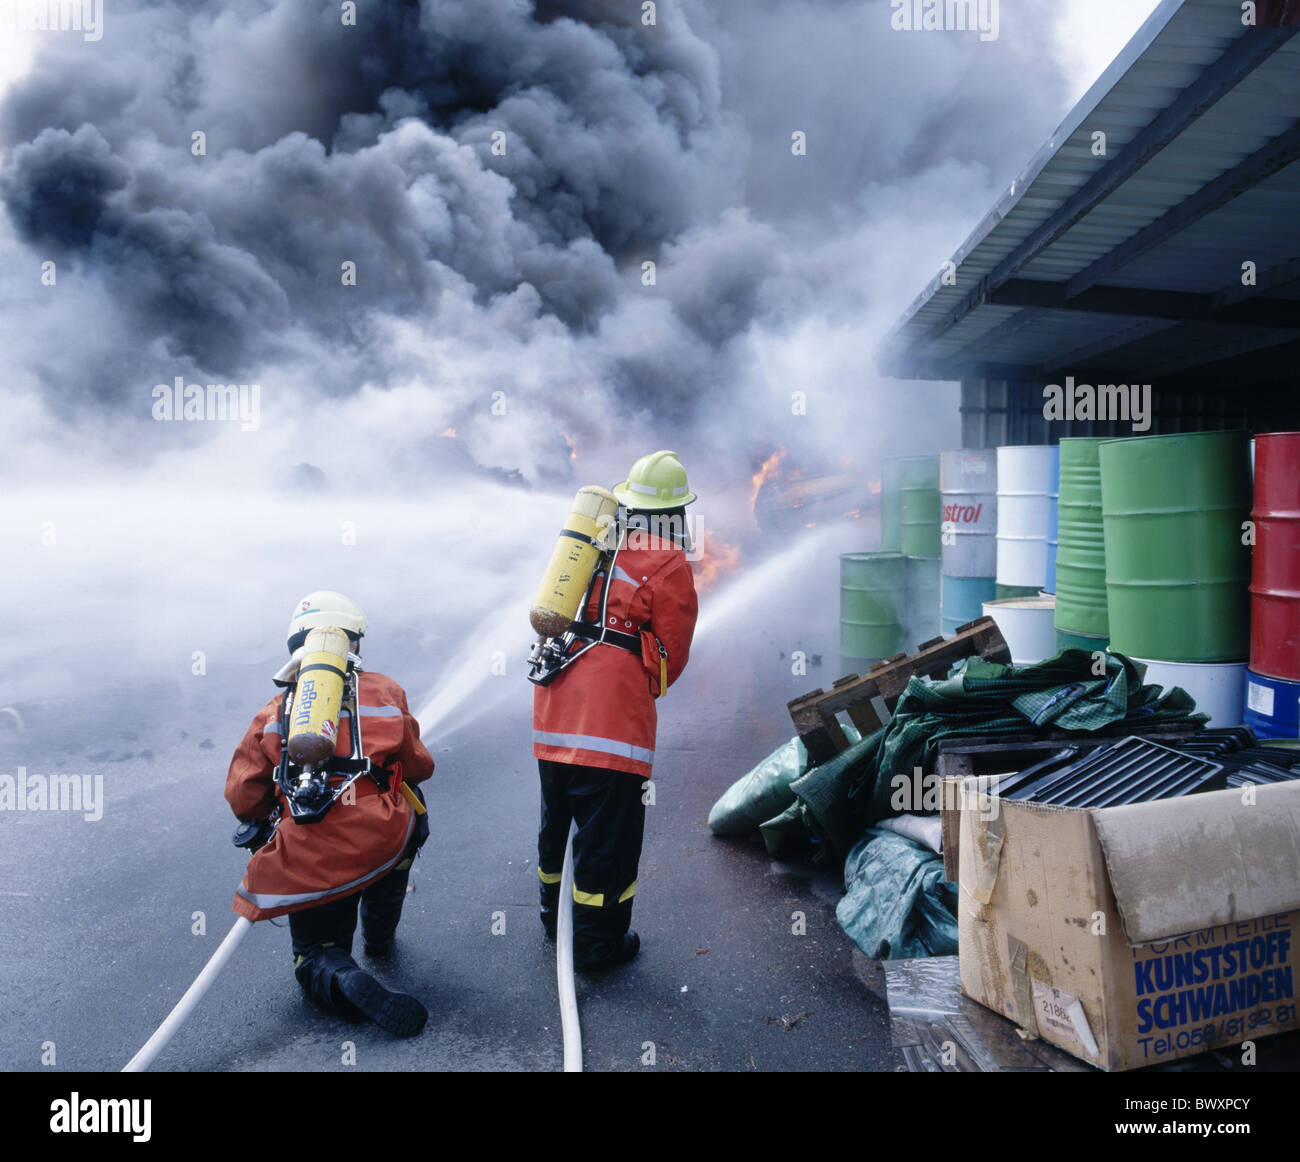 fire fire brigade department firefighters camps warehouses extinguishing smoke Rheineck scales shed Switz - Stock Image